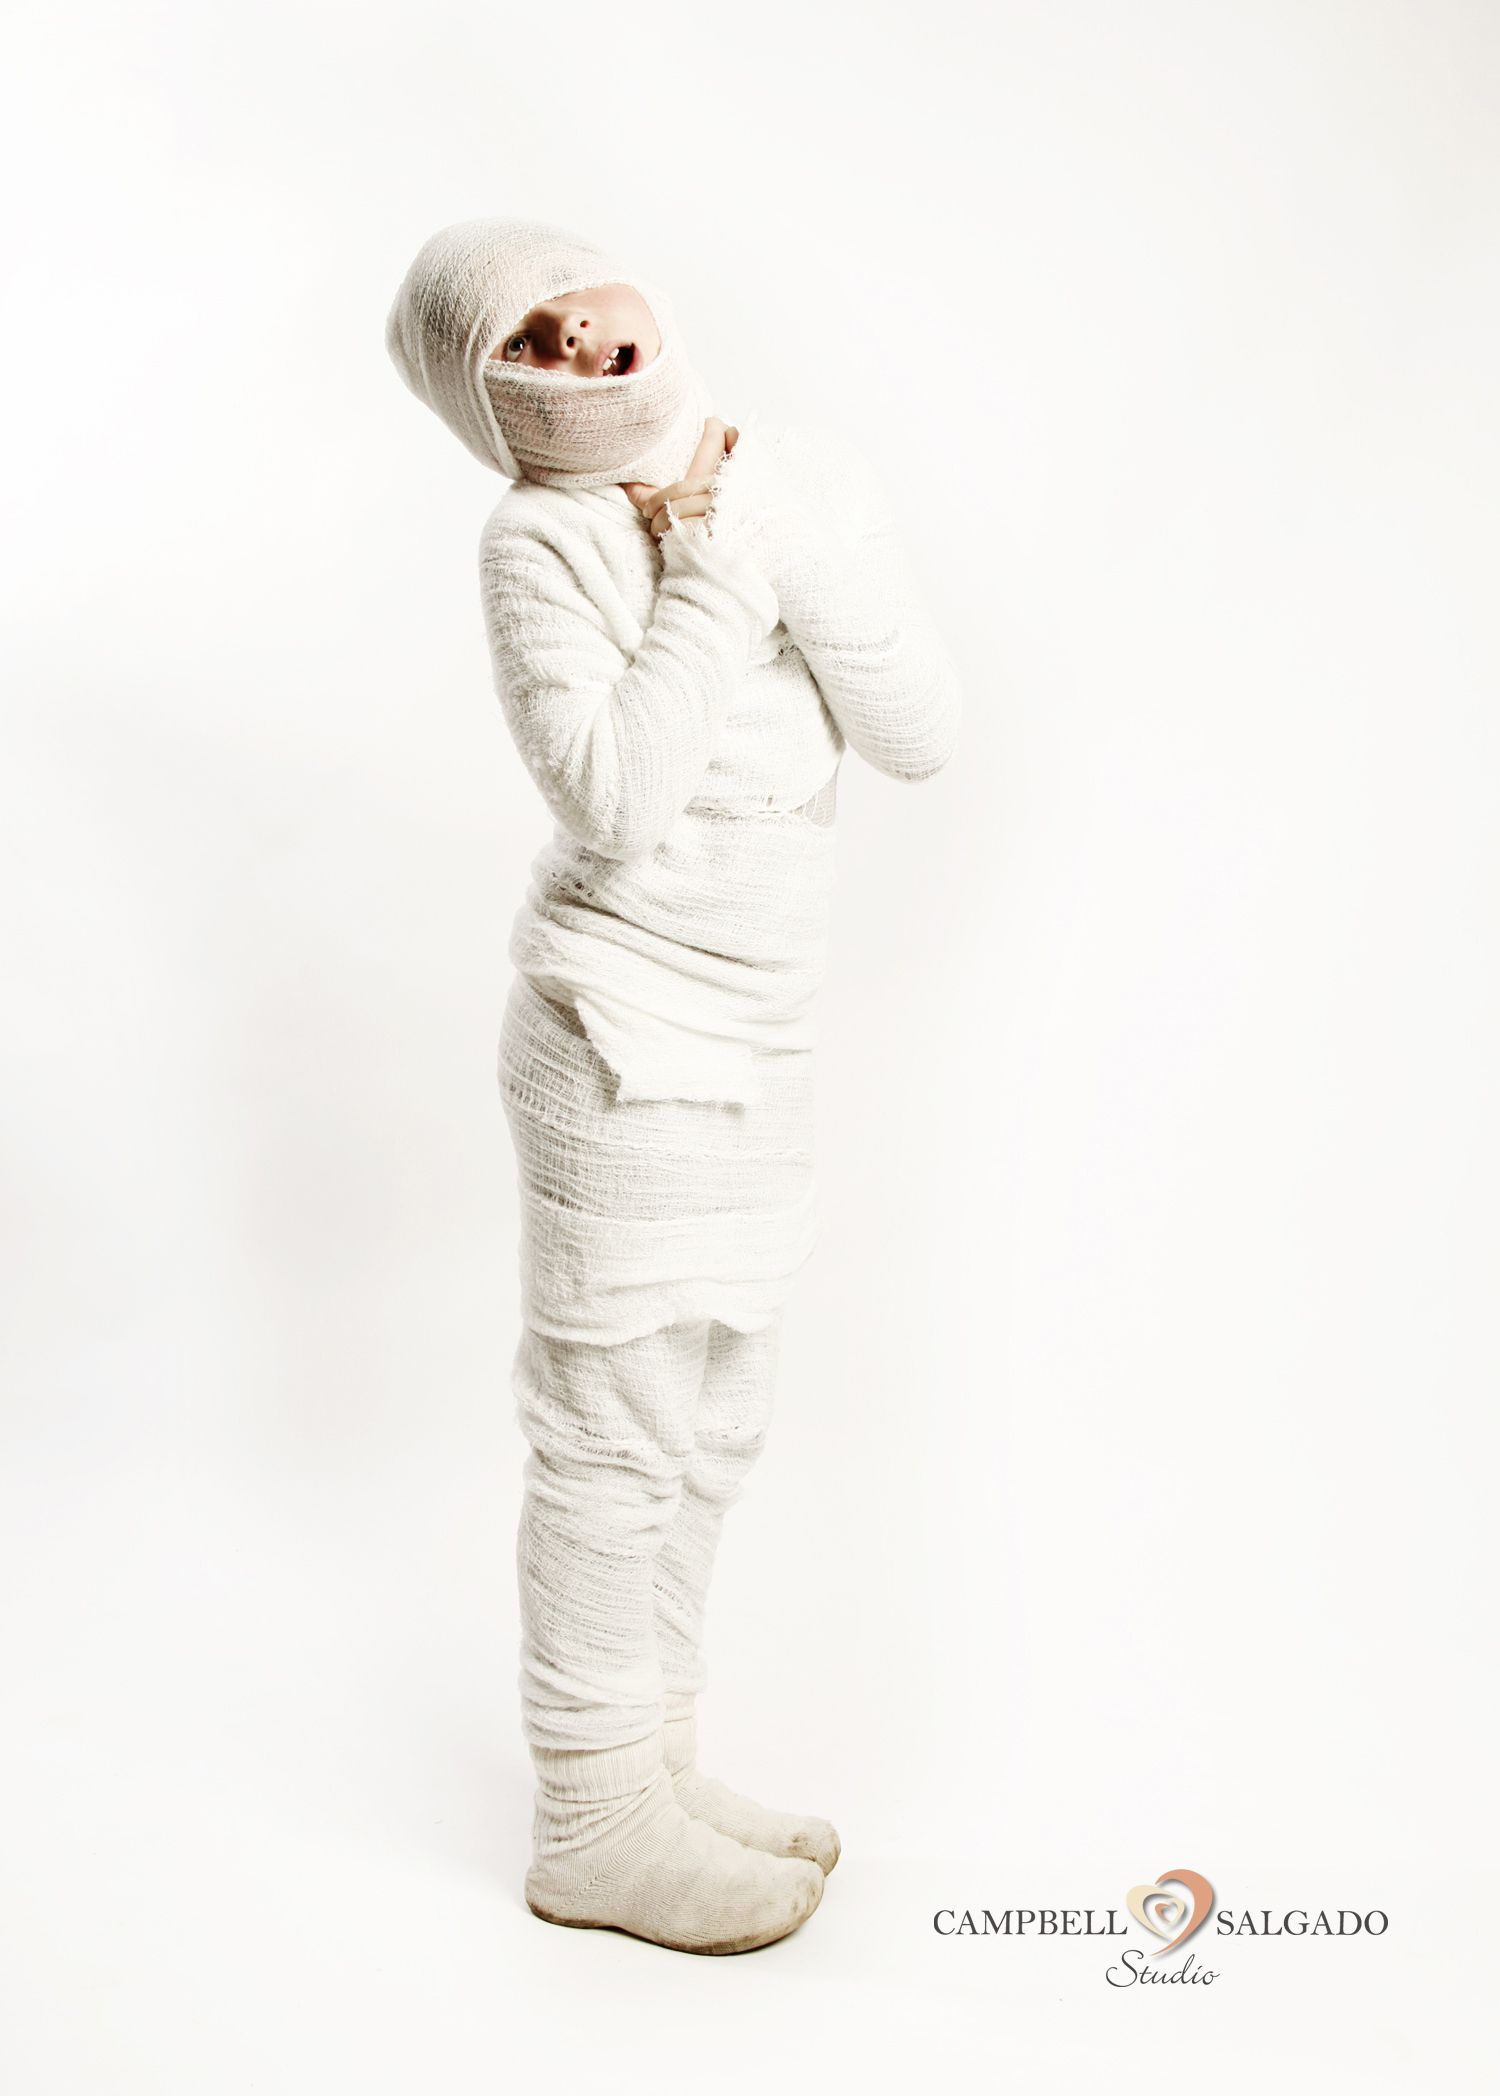 A fantastic gauze, homemade Mummy Halloween costume